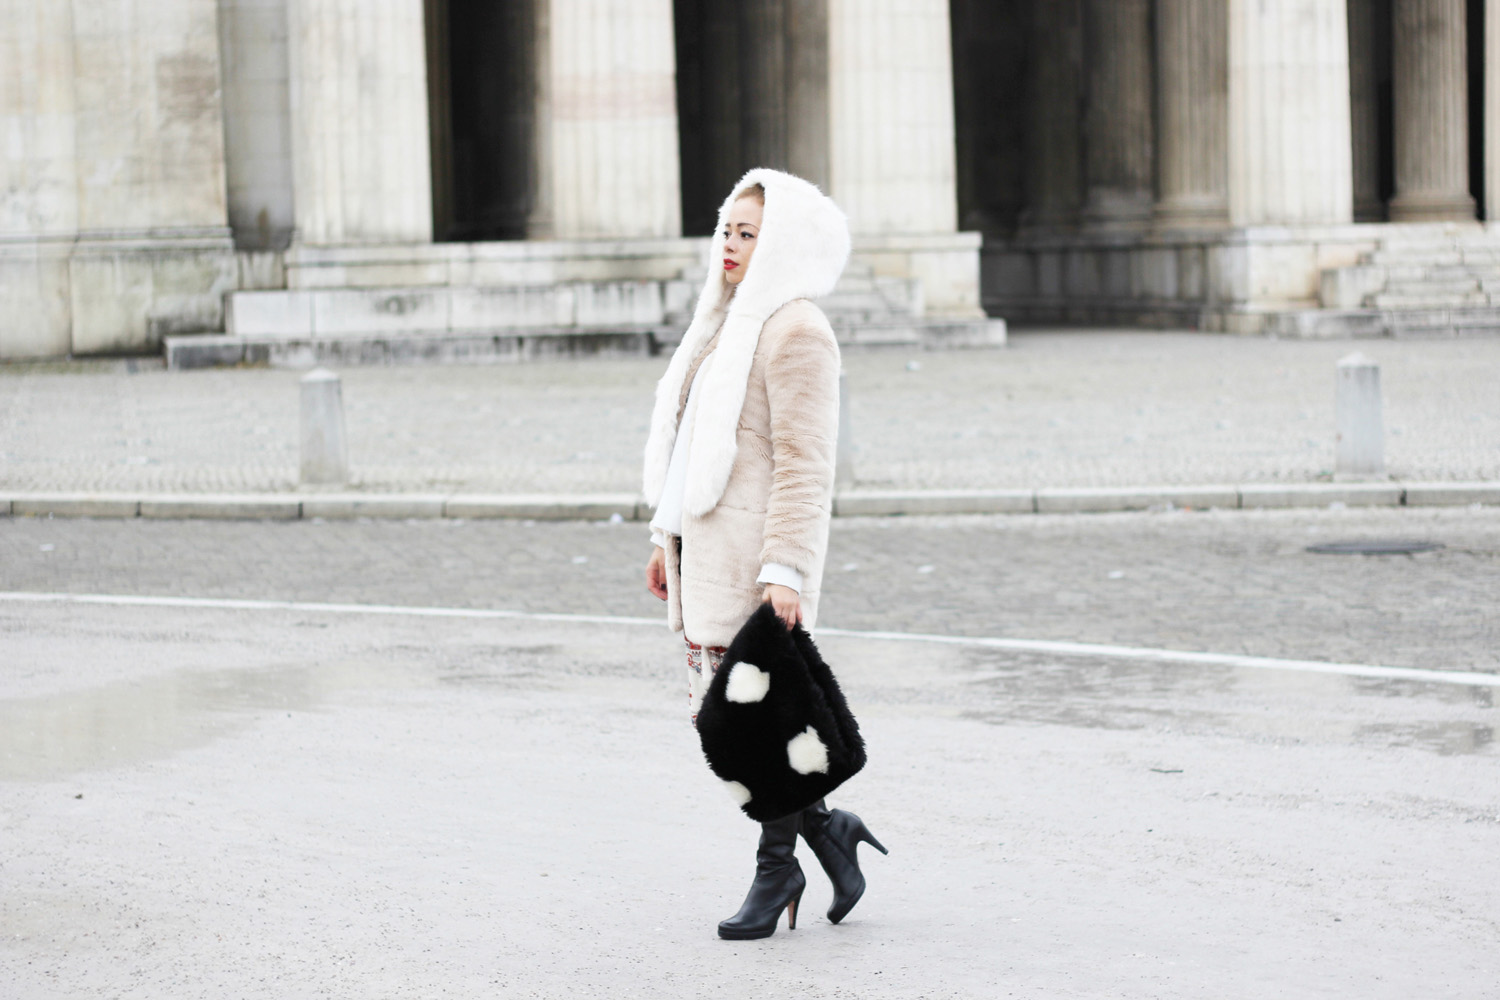 fatimayarie-white-fauxfur-cap-rose-coat-reddress-leatherboots-img_6993